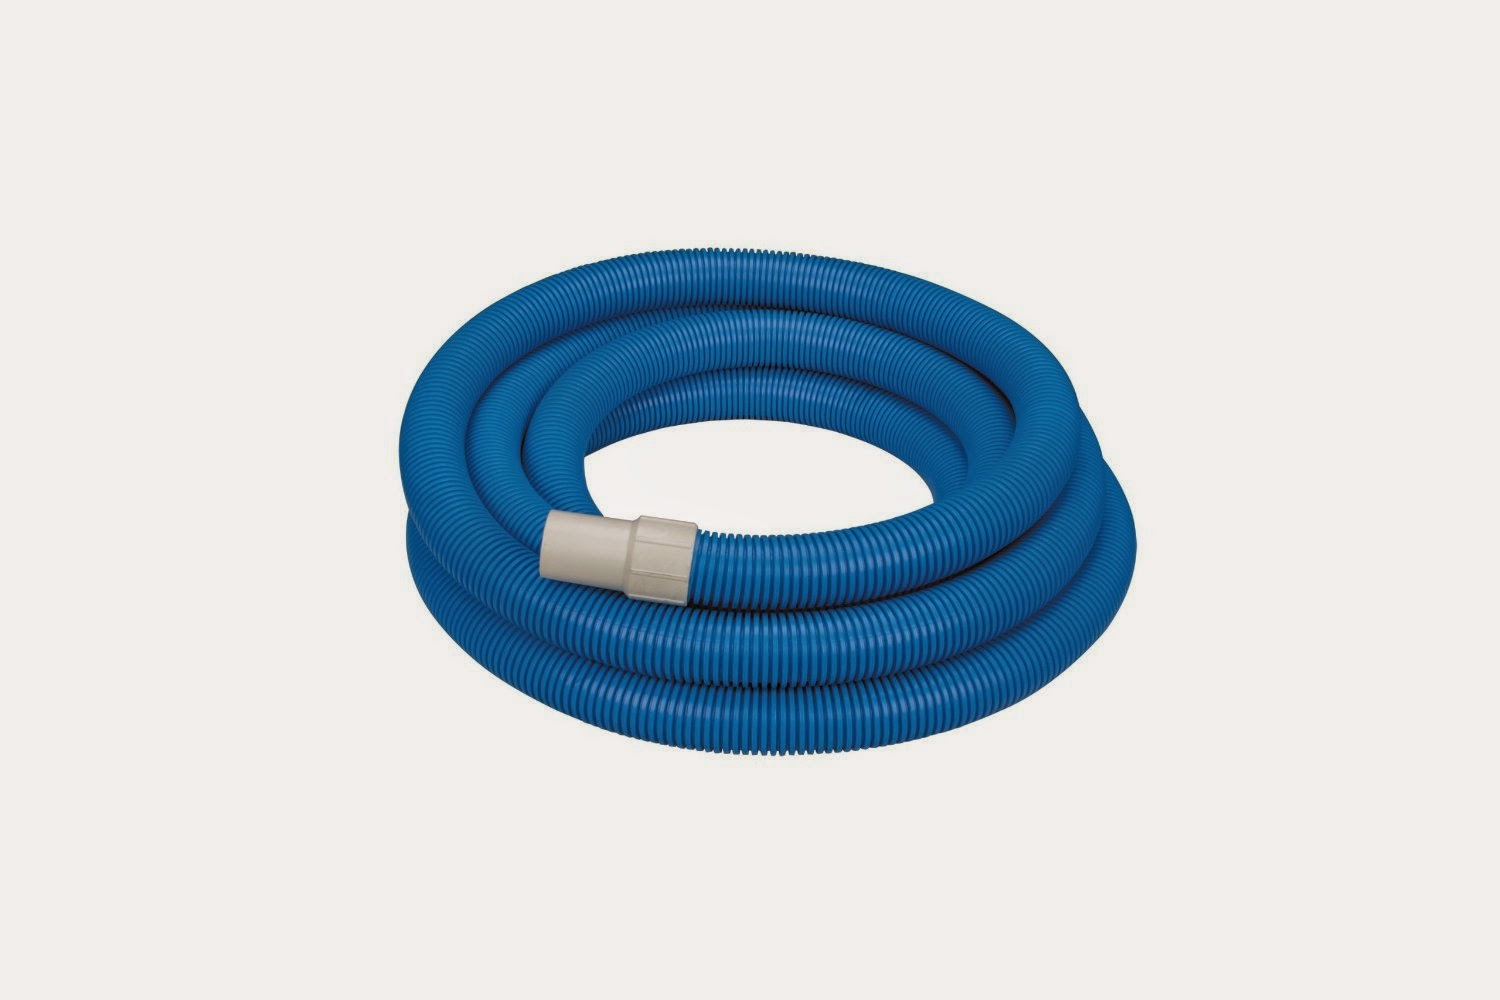 Pool vacuum hose intex pool vacuum hose for Garden hose pool vacuum